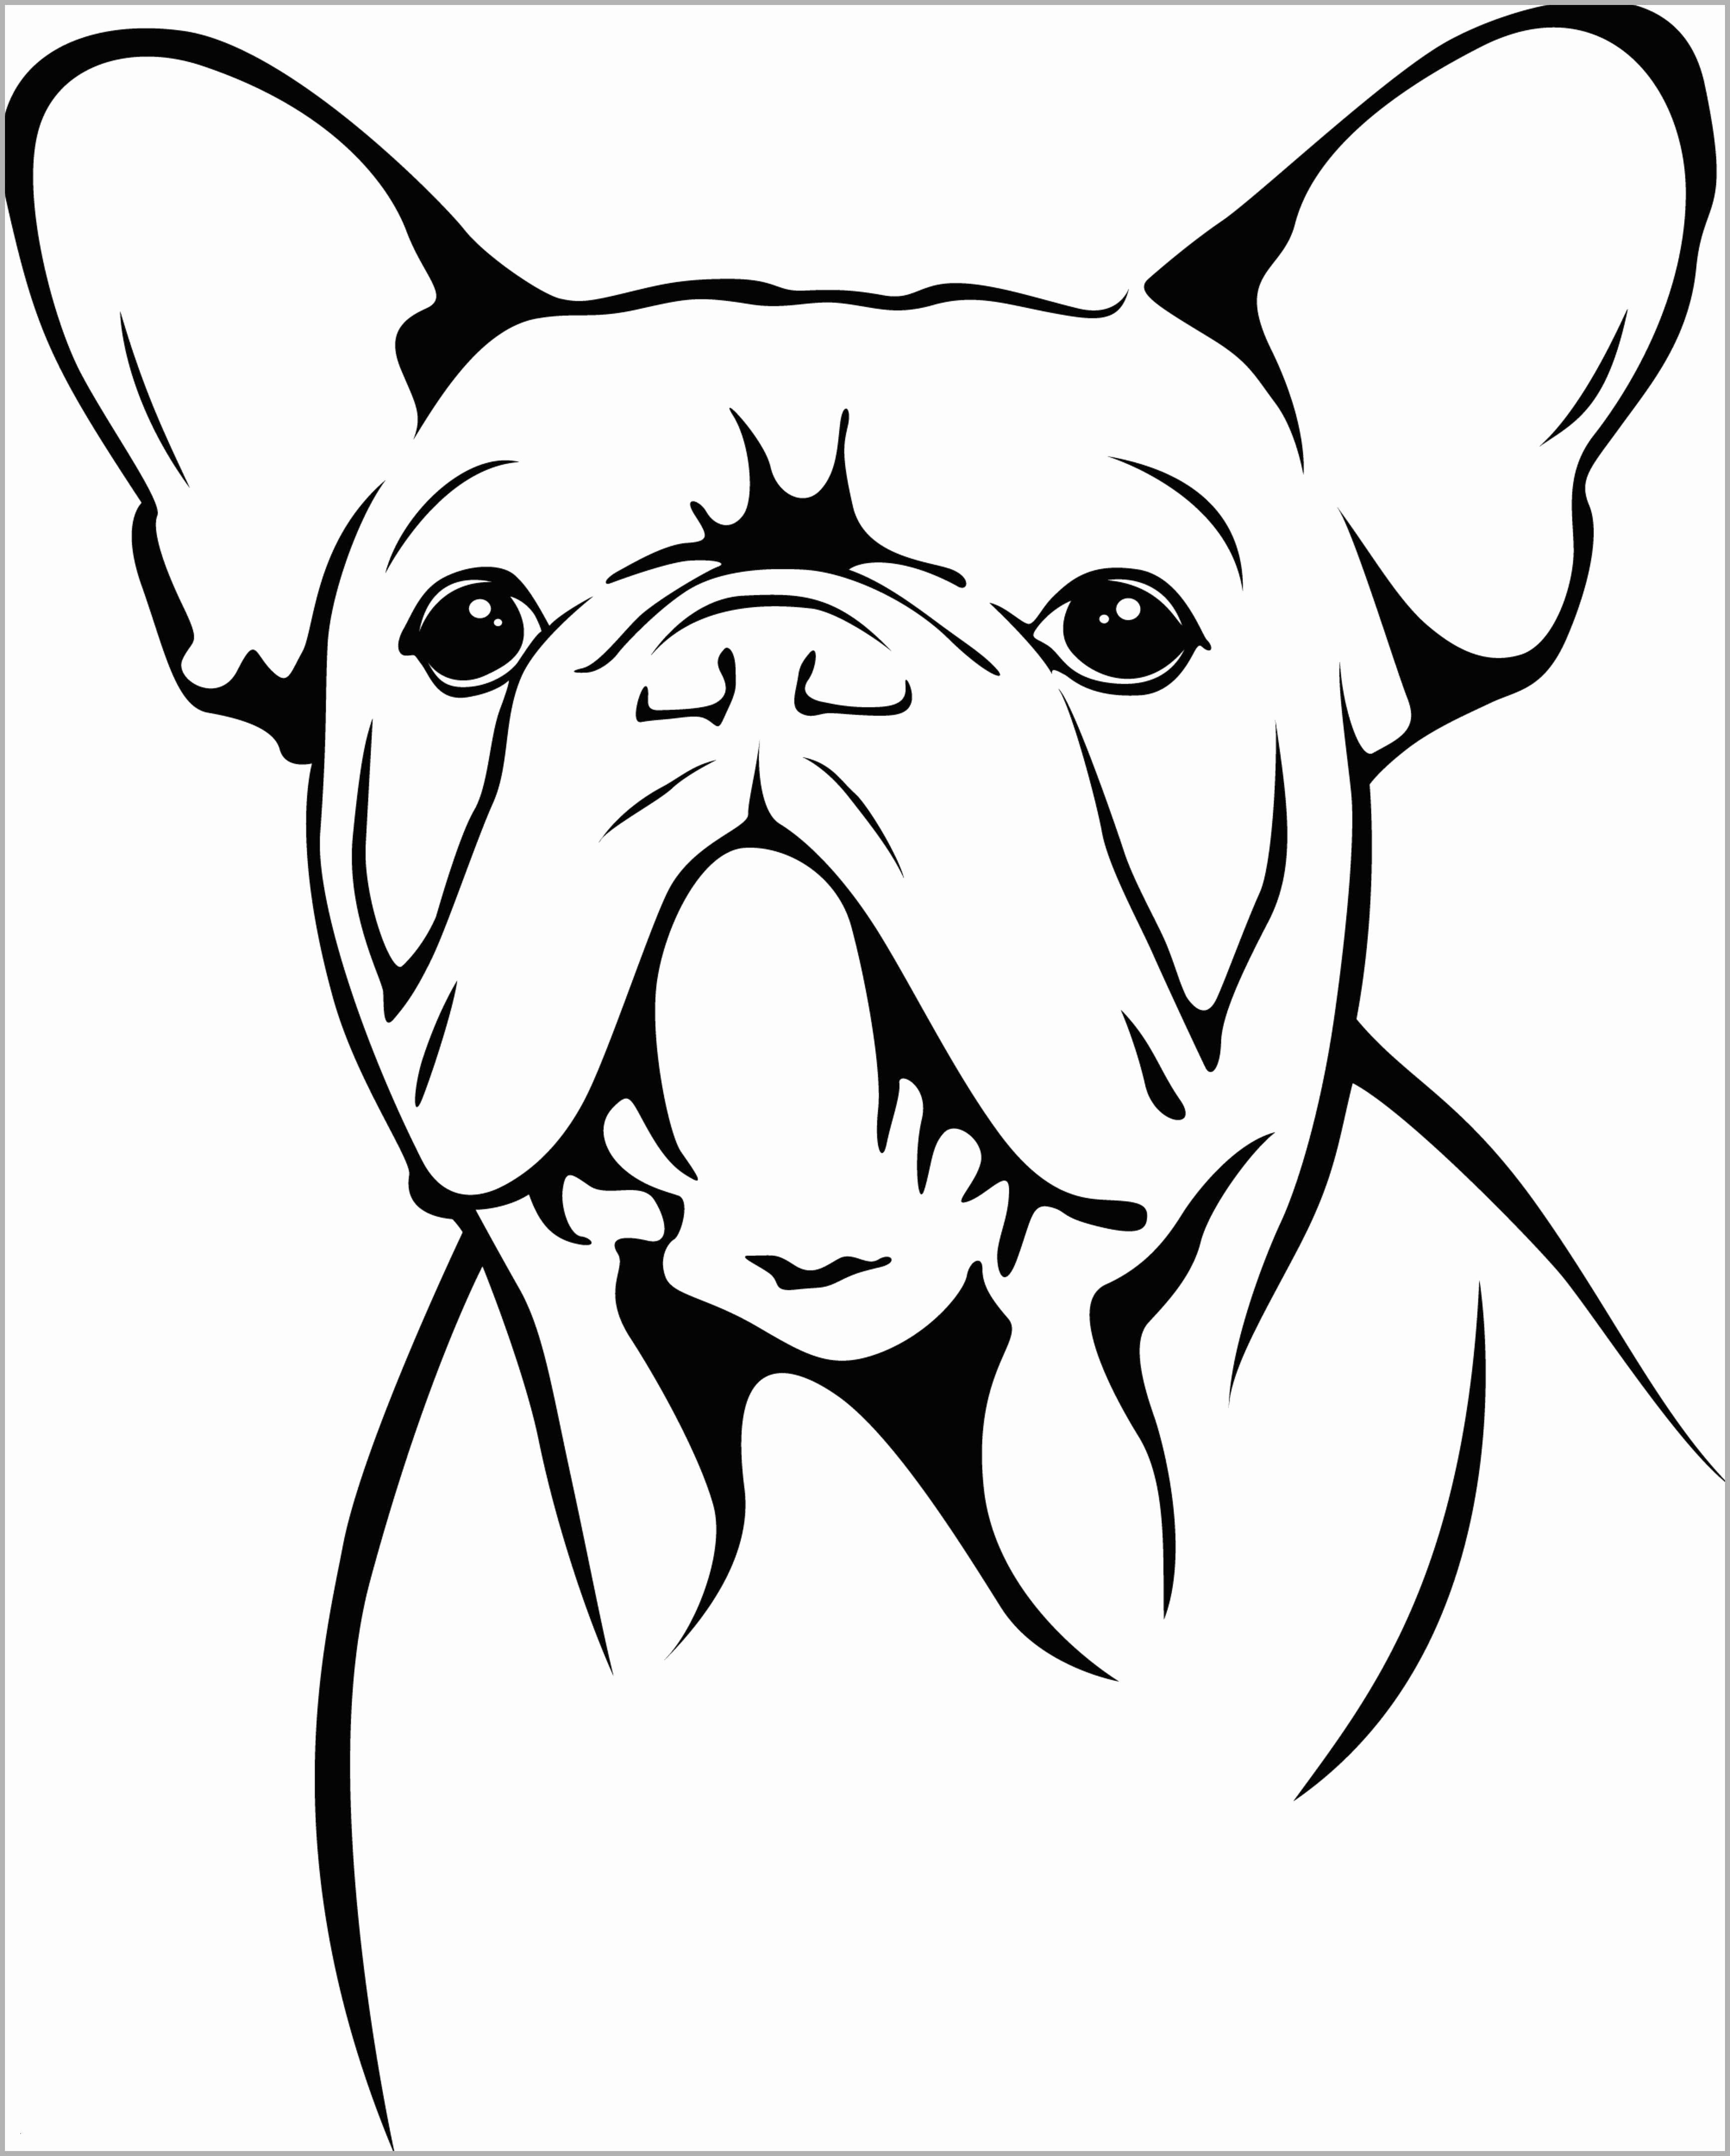 Bull Dog Coloring Page Luxury Bulldog Clip Art Luxury French Bulldog Wallpaper Lovely In 2020 Dog Coloring Page Animal Coloring Pages Puppy Coloring Pages